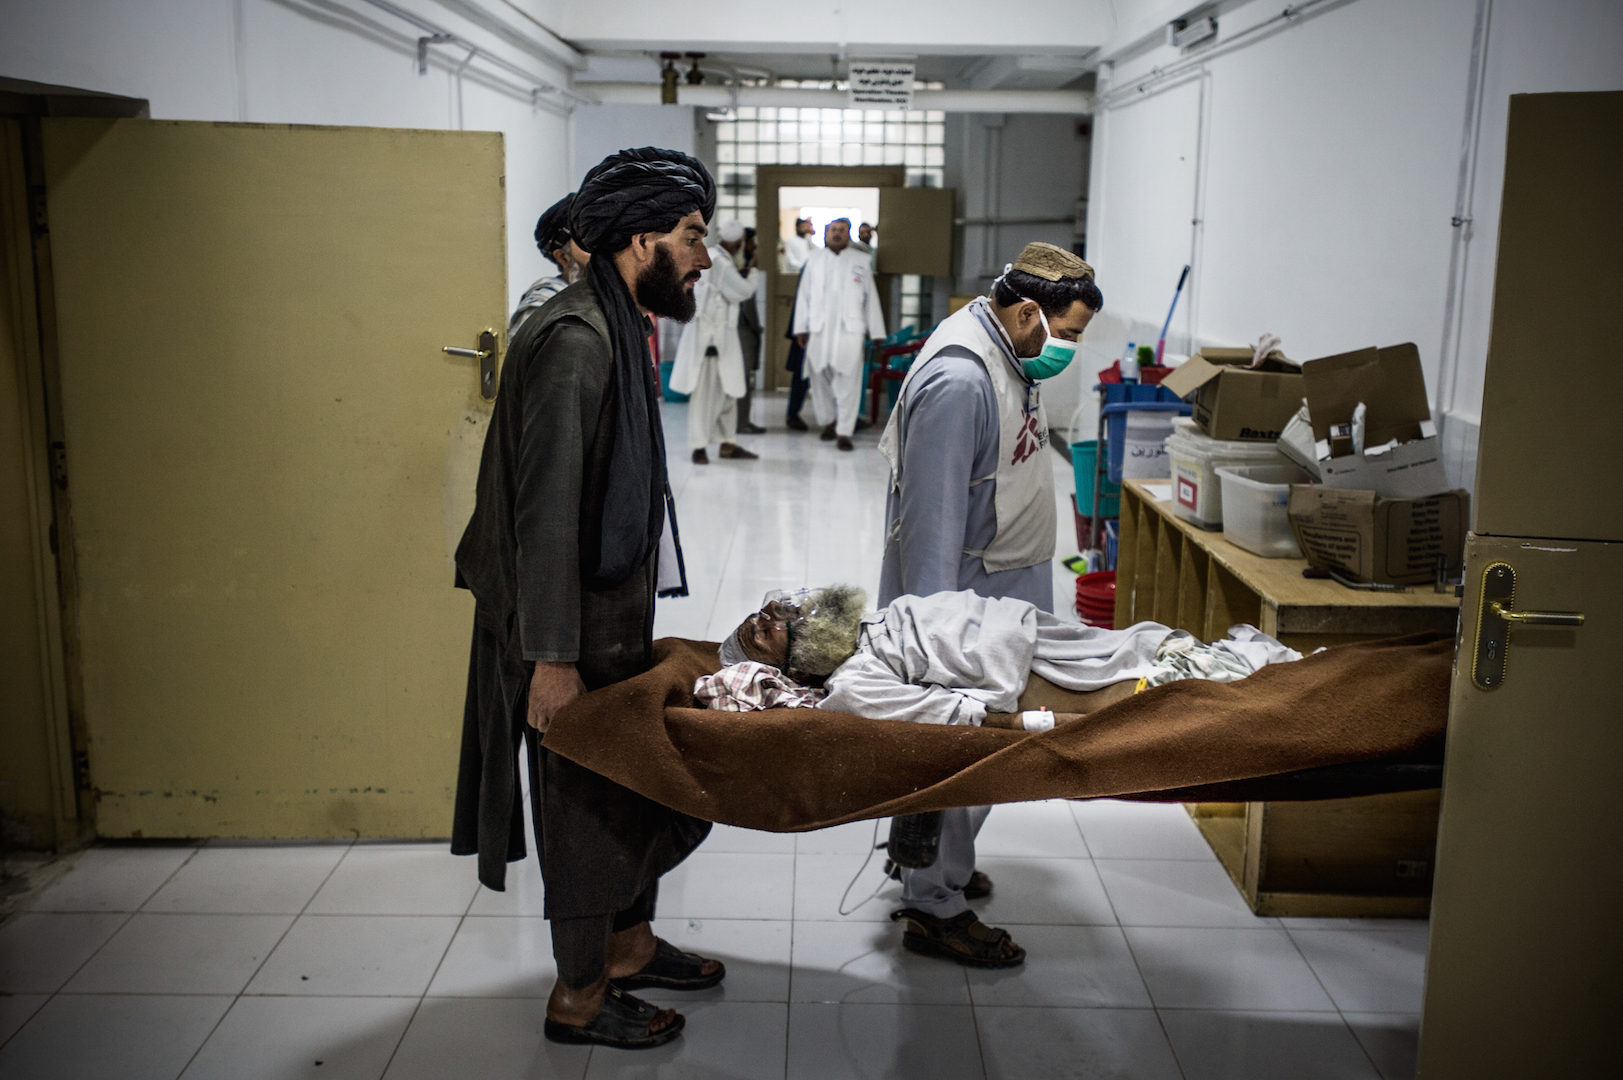 A patient arrives at Boost Hospital in Lashkar Gah, Afghanistan